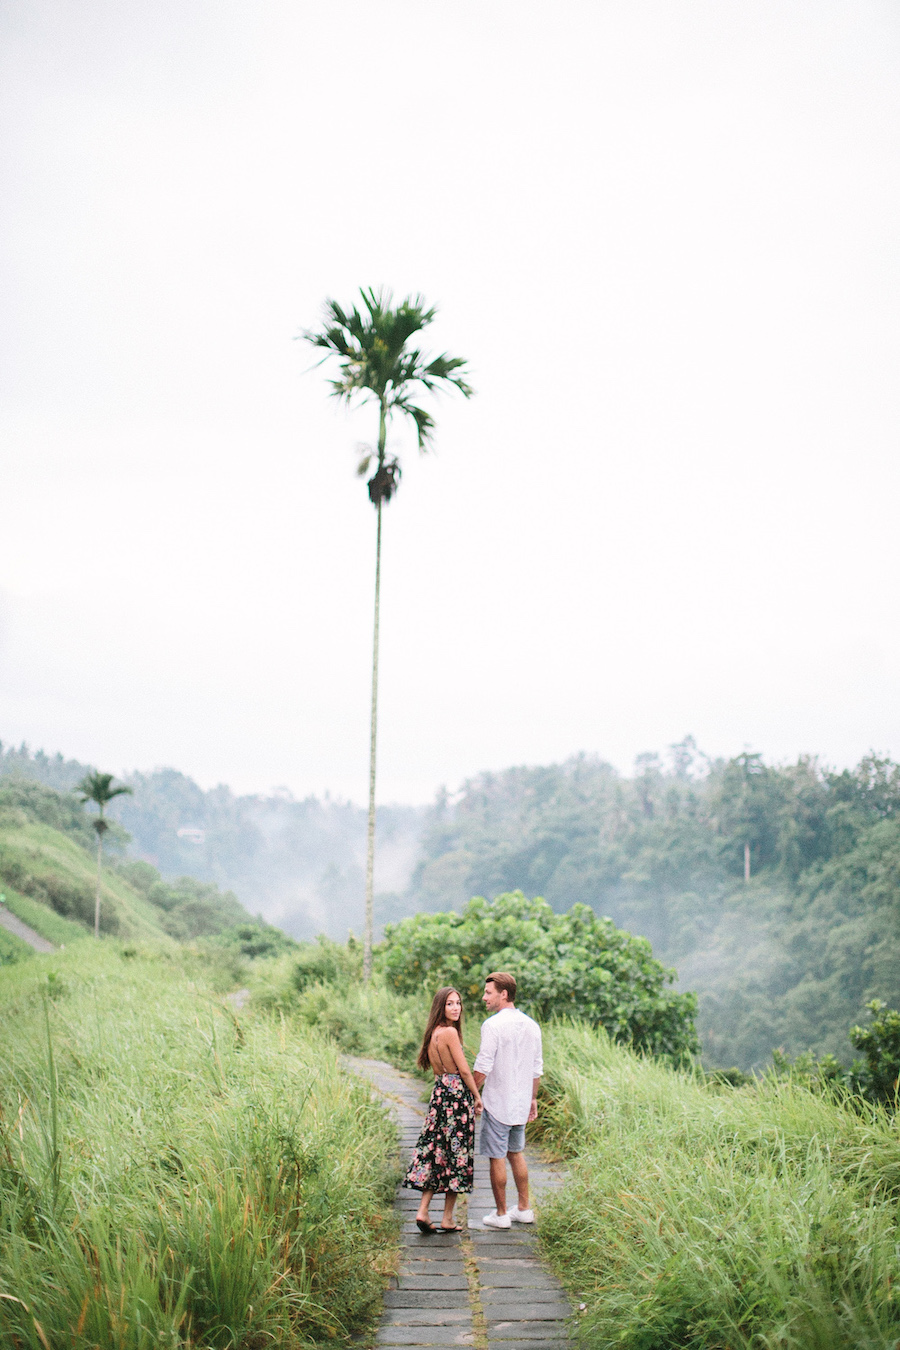 saya-photography-pre-wedding-bali-rice-field-20.jpg